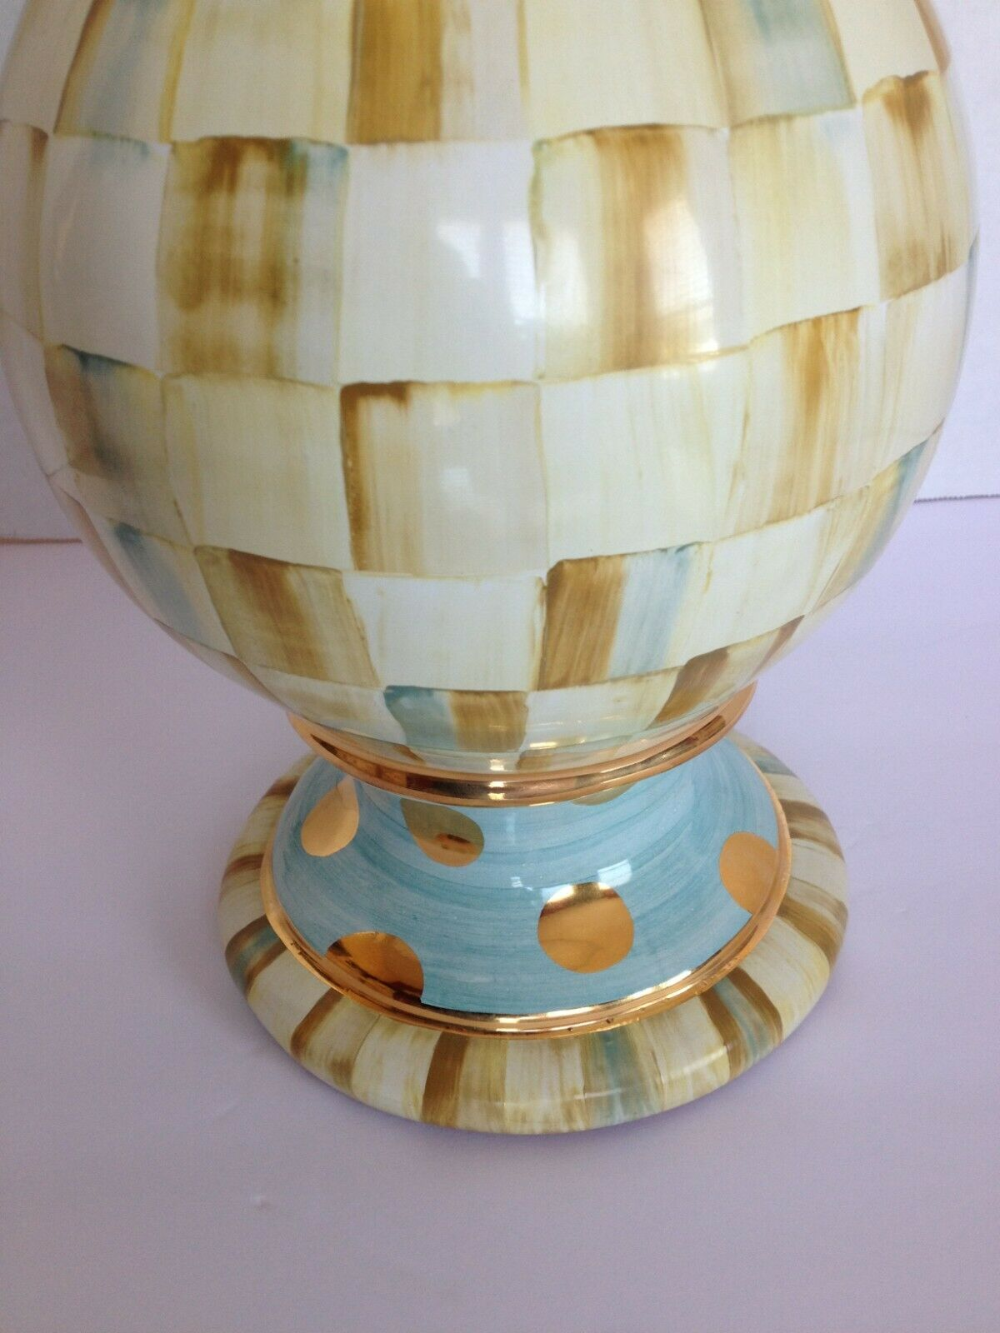 Mackenzie Childs Parchment Check 24 Table Lamp Shade Finial Hand Painted Ebay In 2020 Stained Glass Lamp Shades Lamp Shade Finials Mission Stained Glass